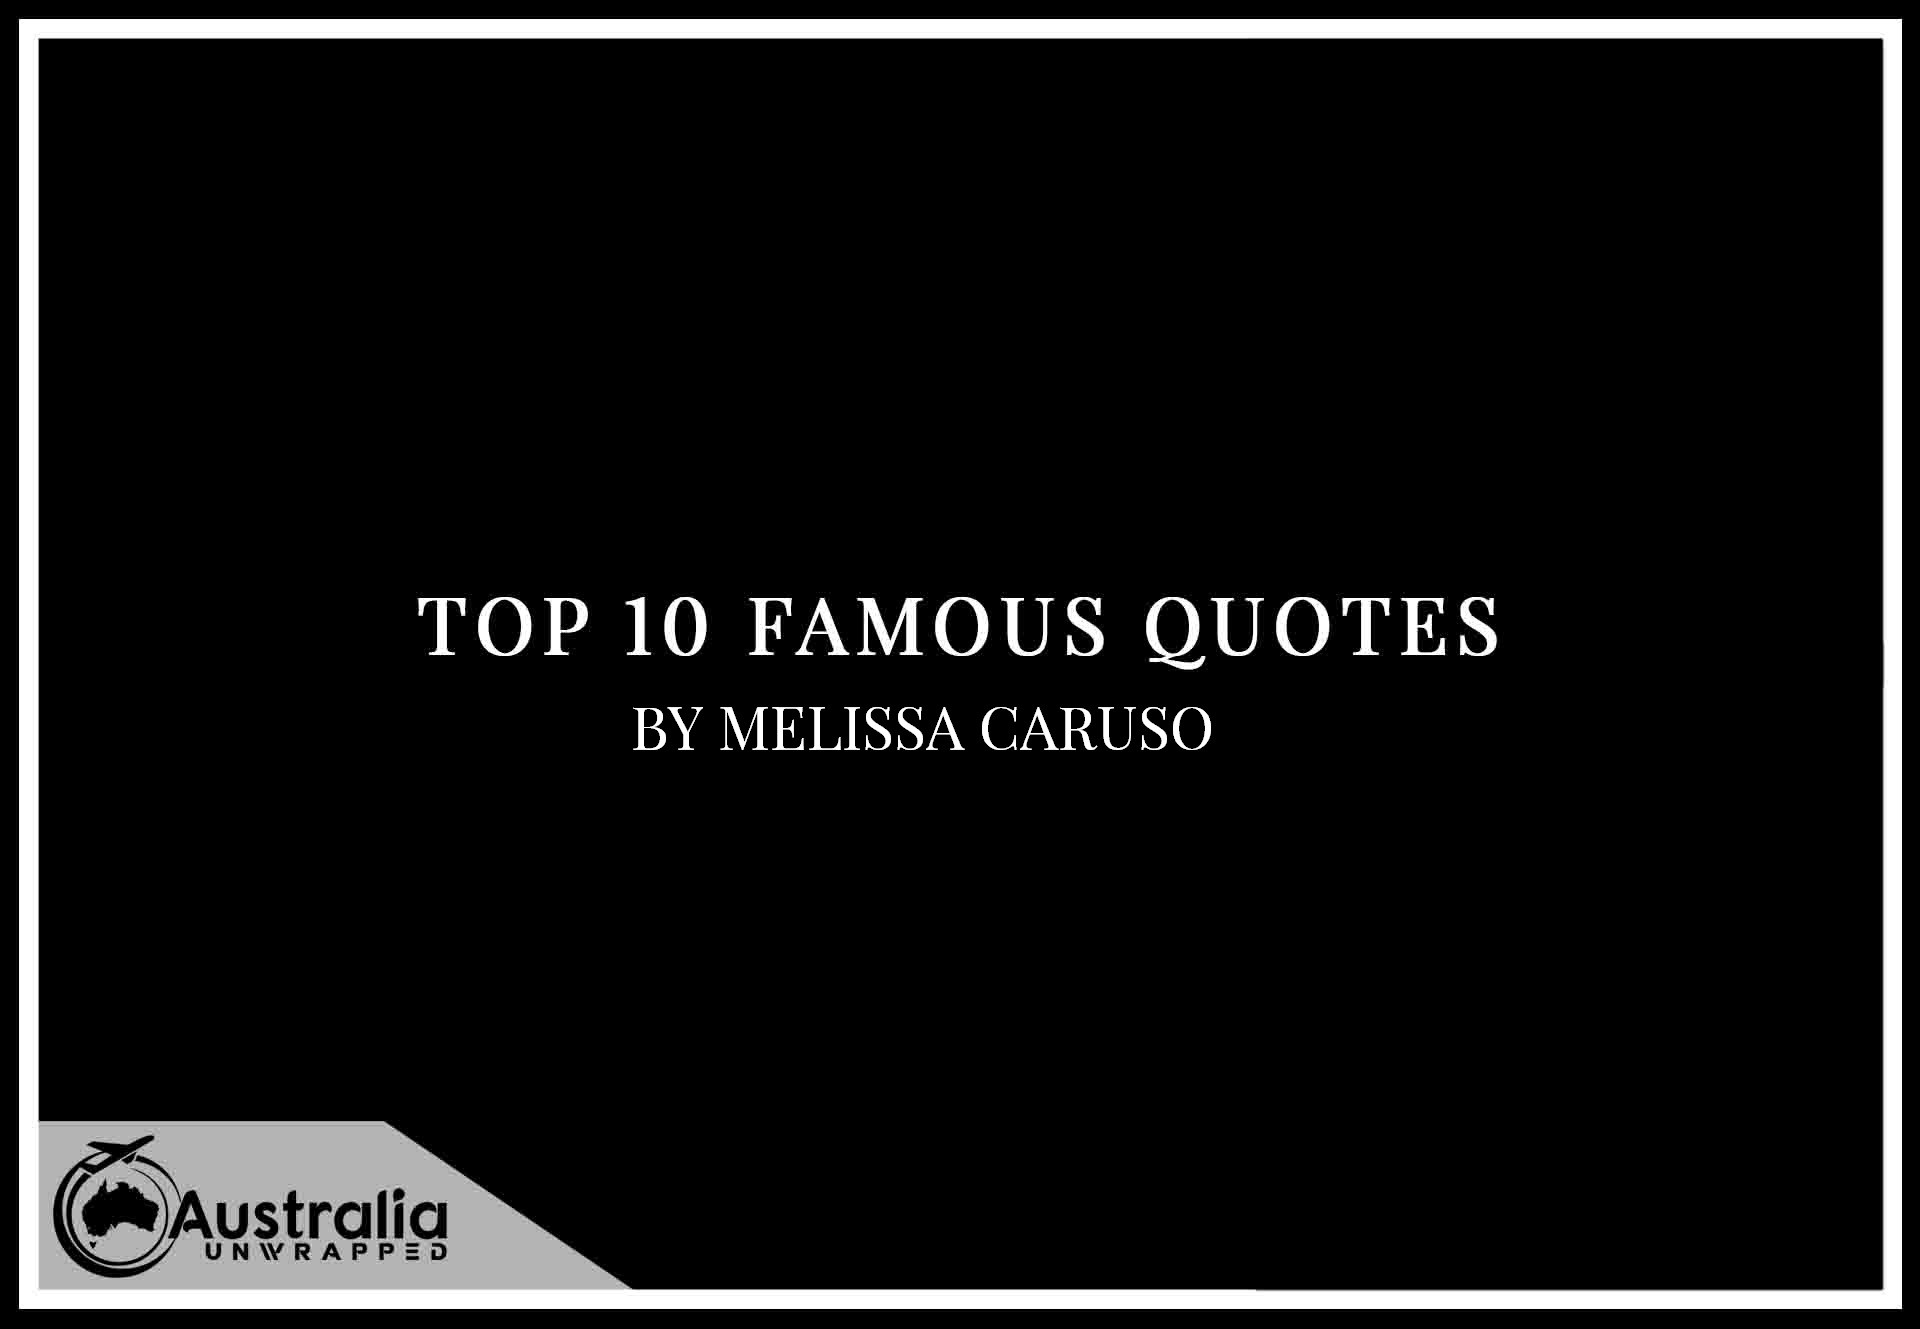 Top 10 Famous Quotes by Author Melissa Caruso